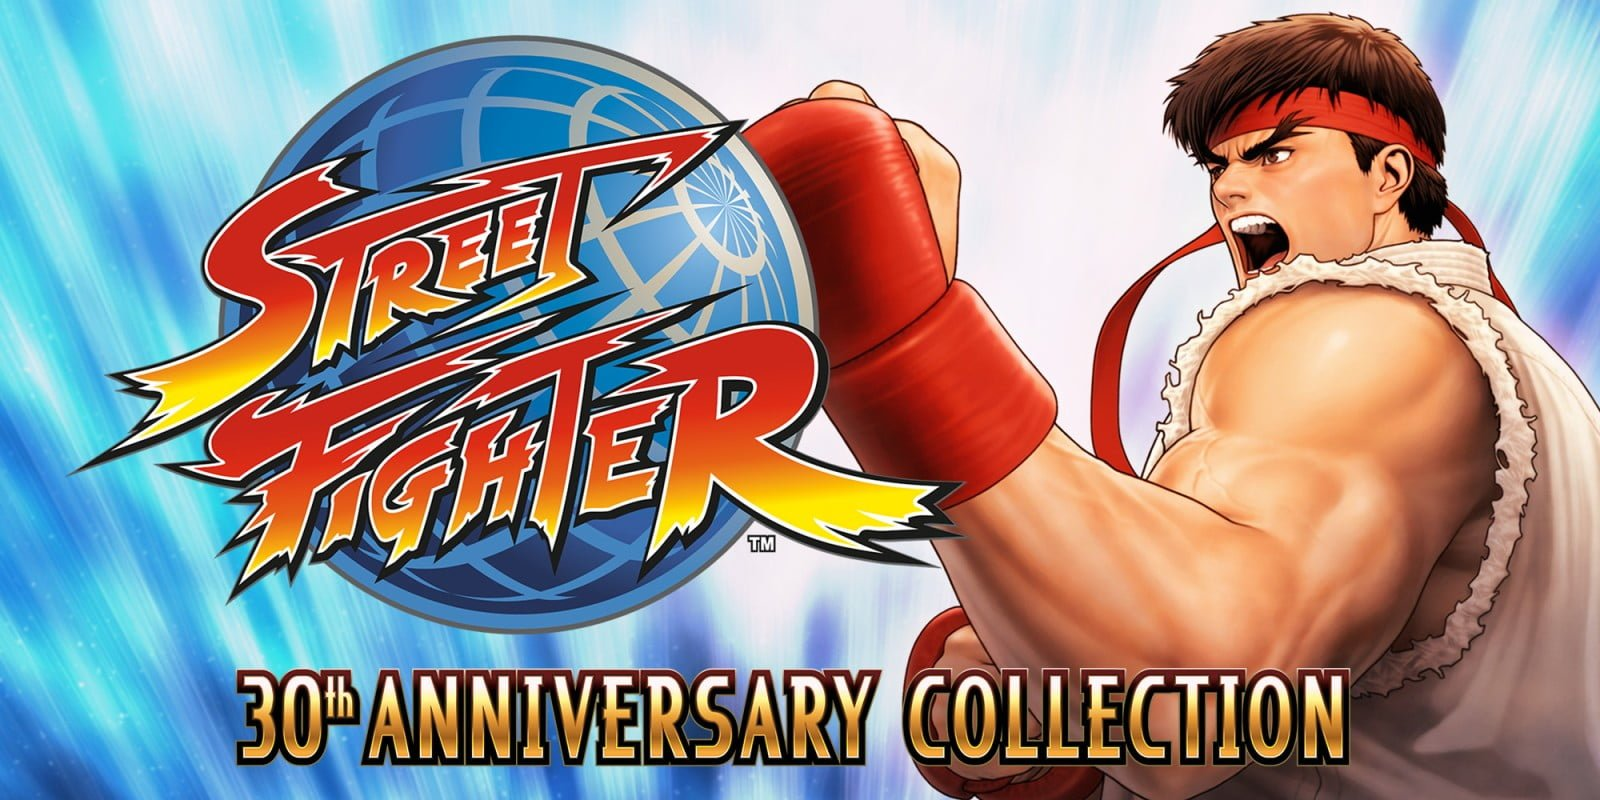 Street Fighter 30th Anniversary Collection Full Version Free Download